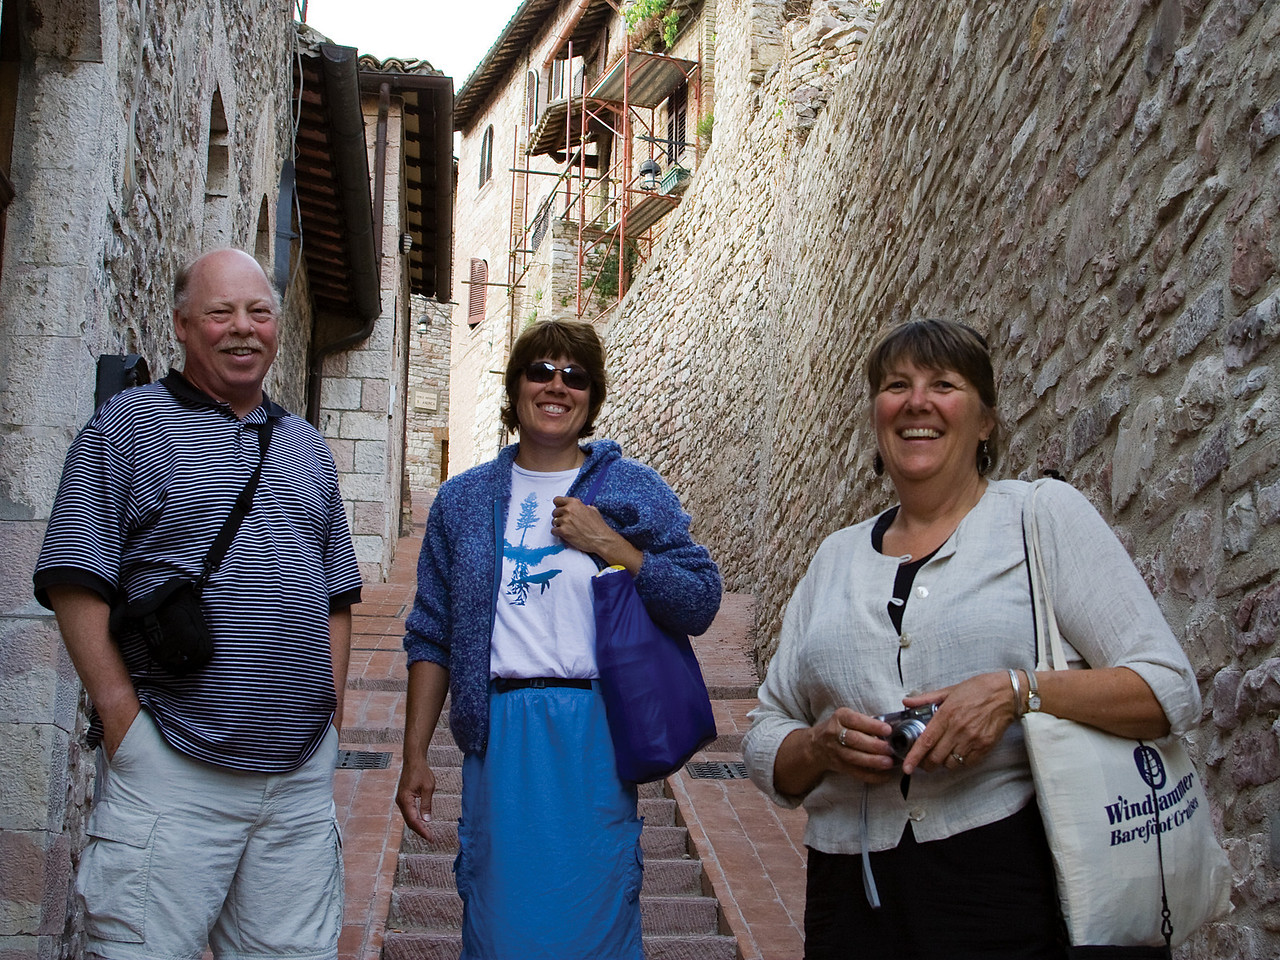 Stair climbers in Assisi